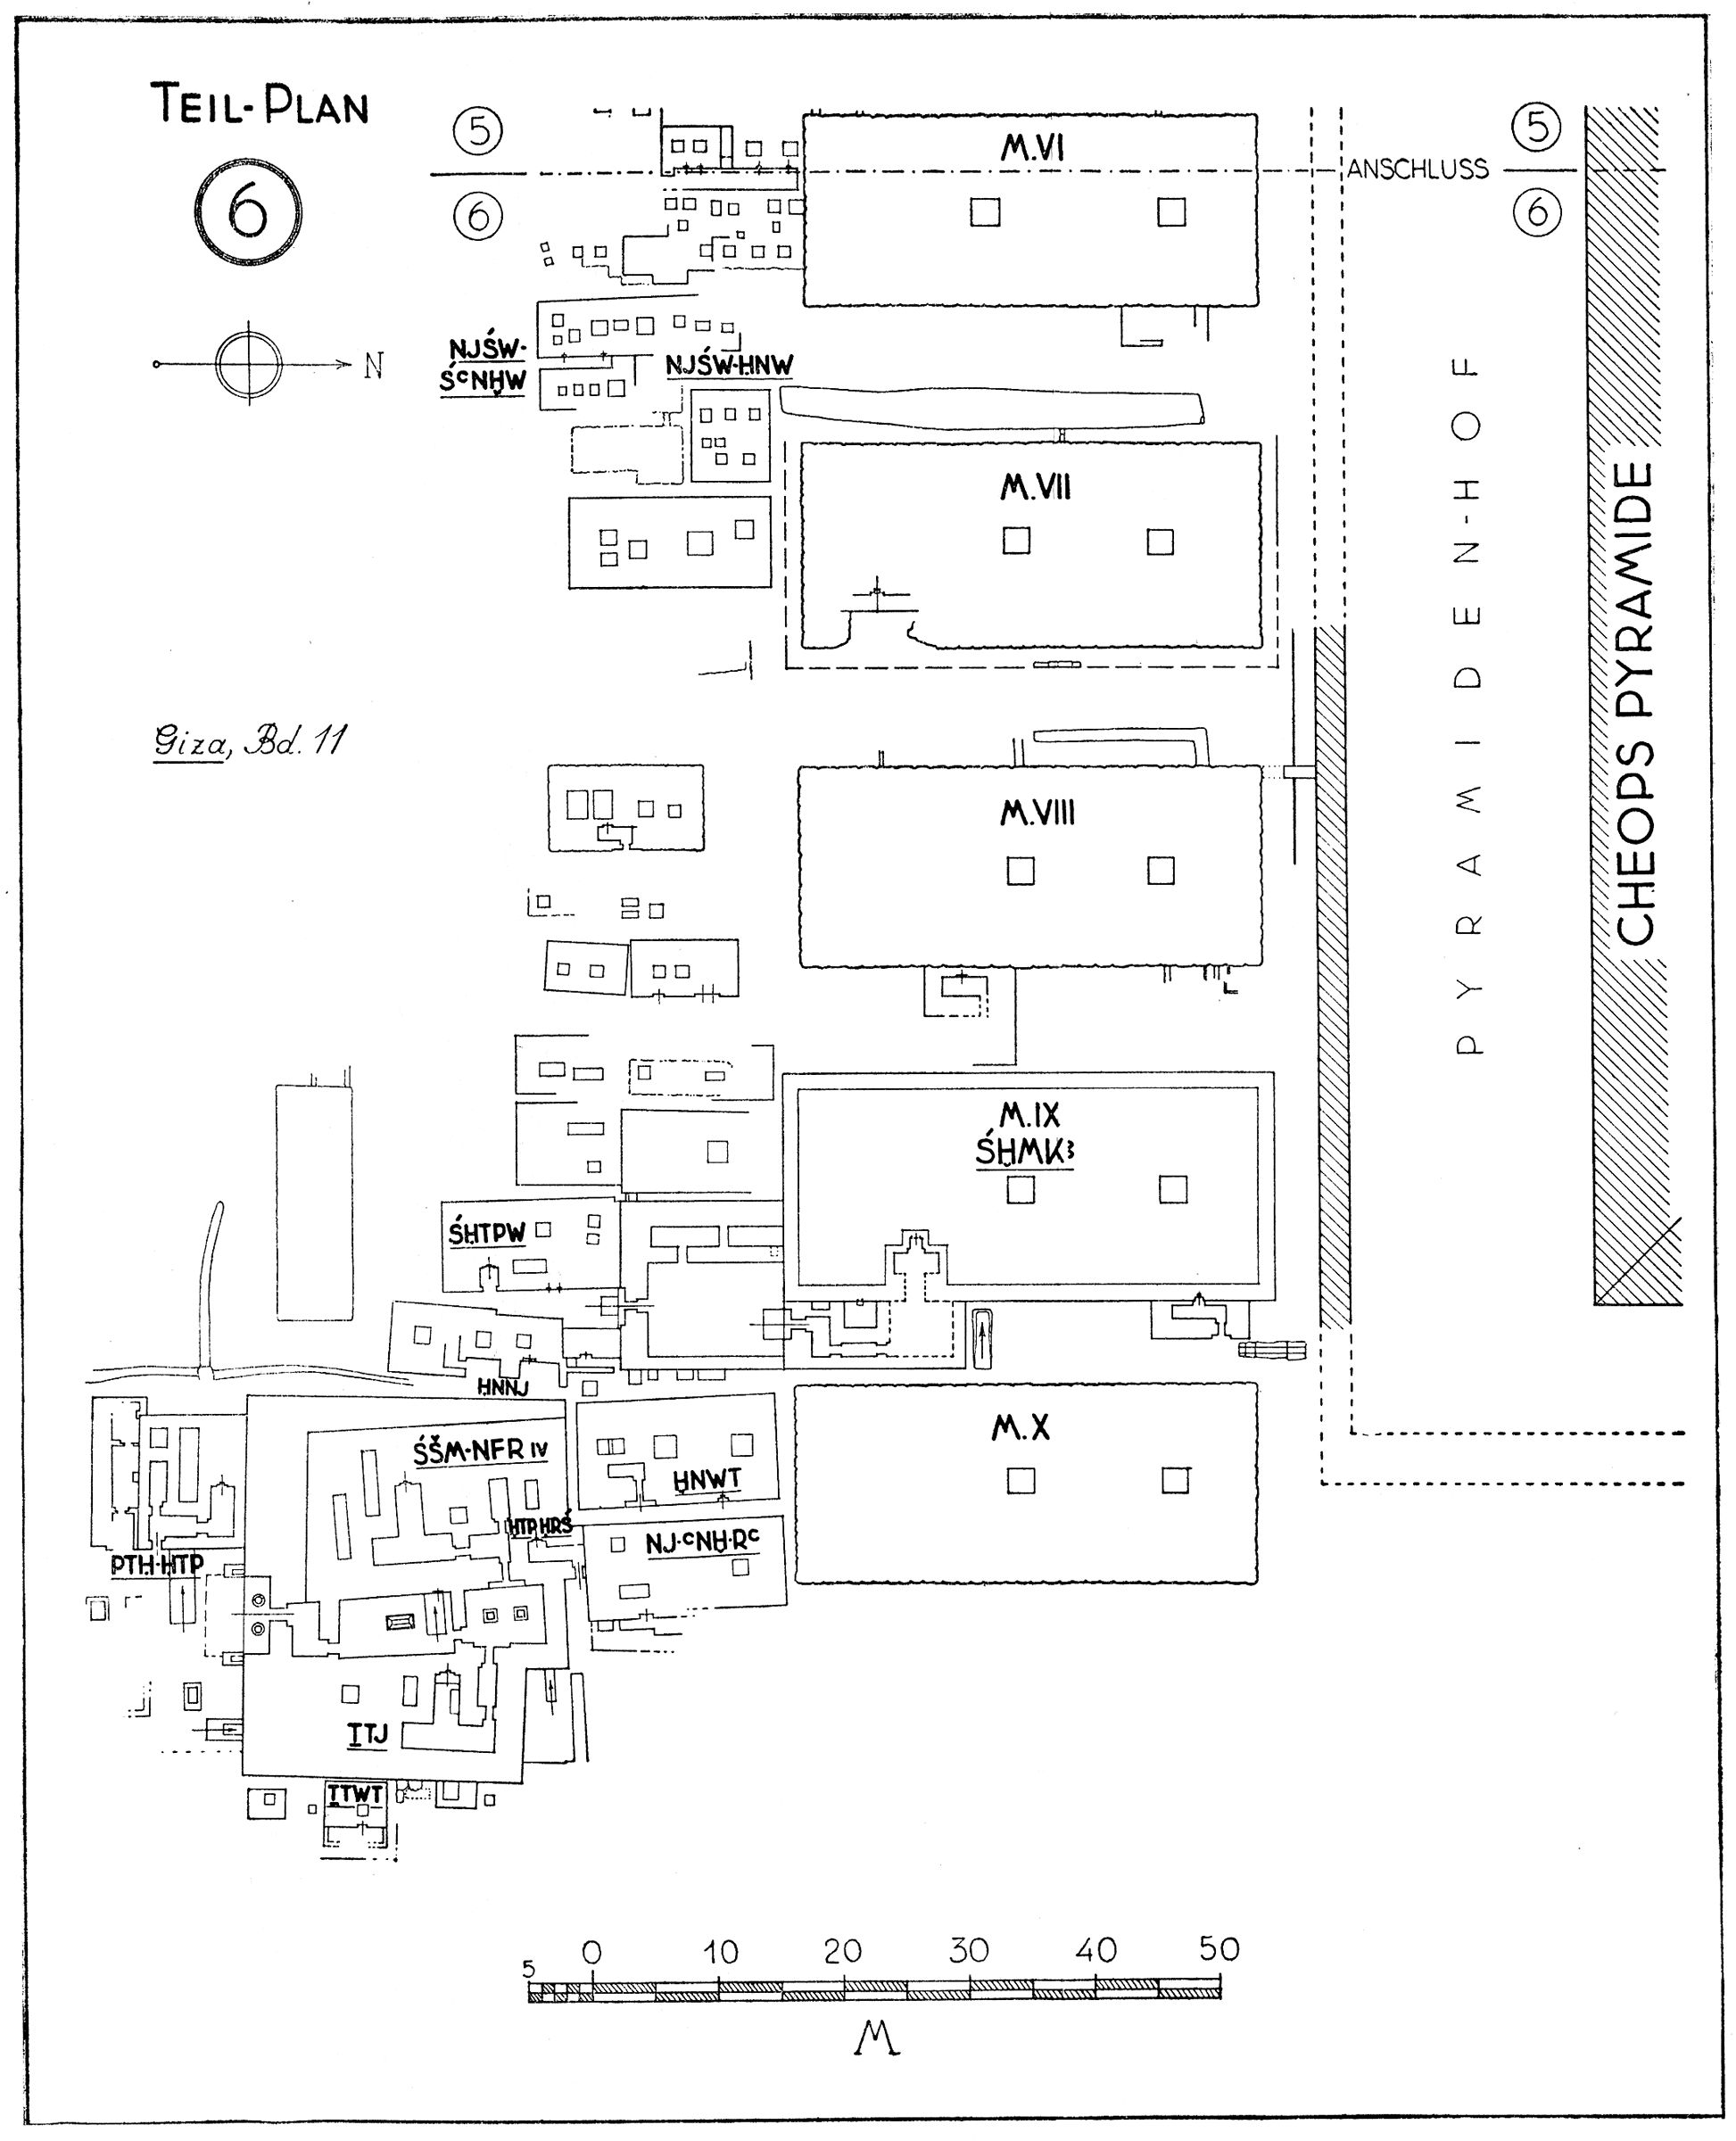 Maps and plans: Plan 6: Cemetery G I-South of German-Austrian Excavation Concession (East Half)